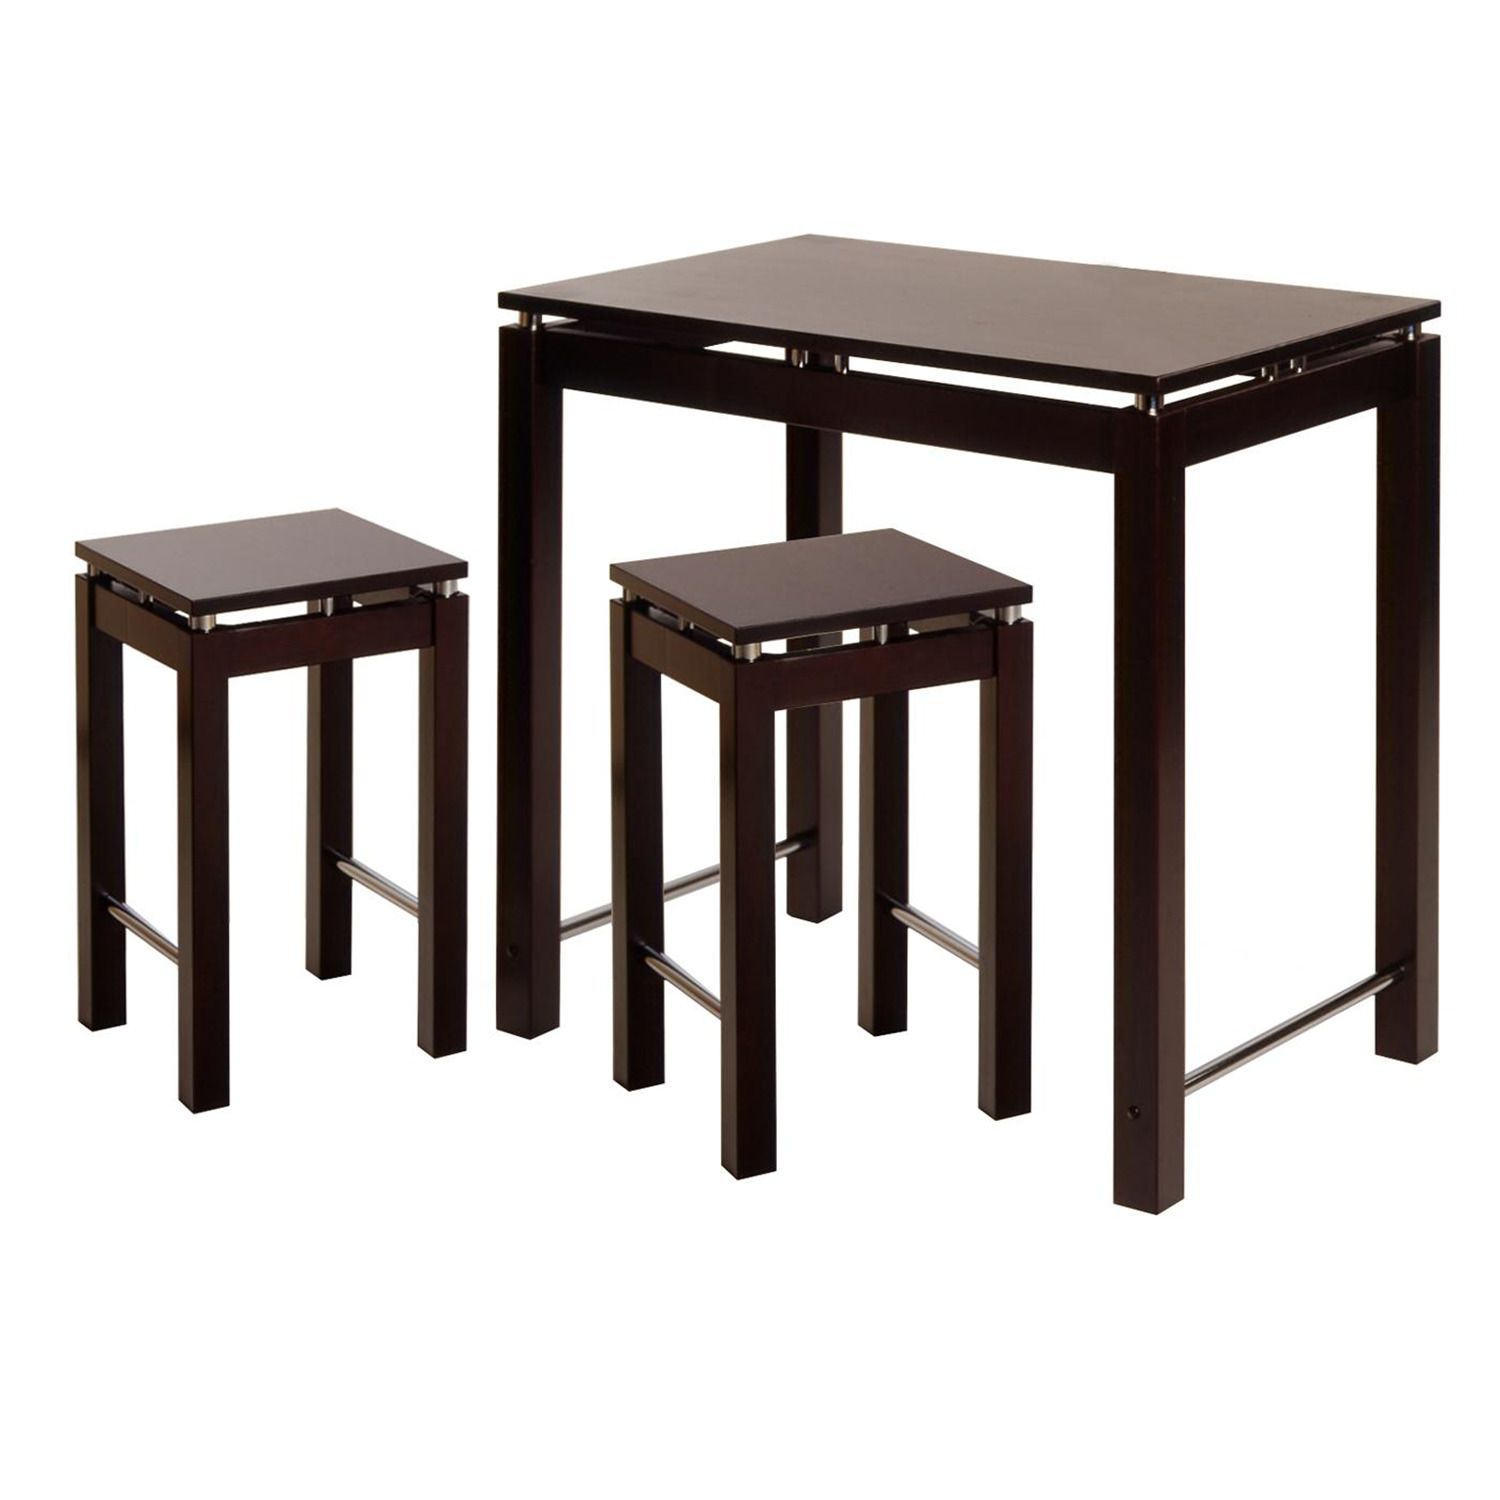 Winsome Linea 3pc Pub Kitchen Set, Island Table with 2